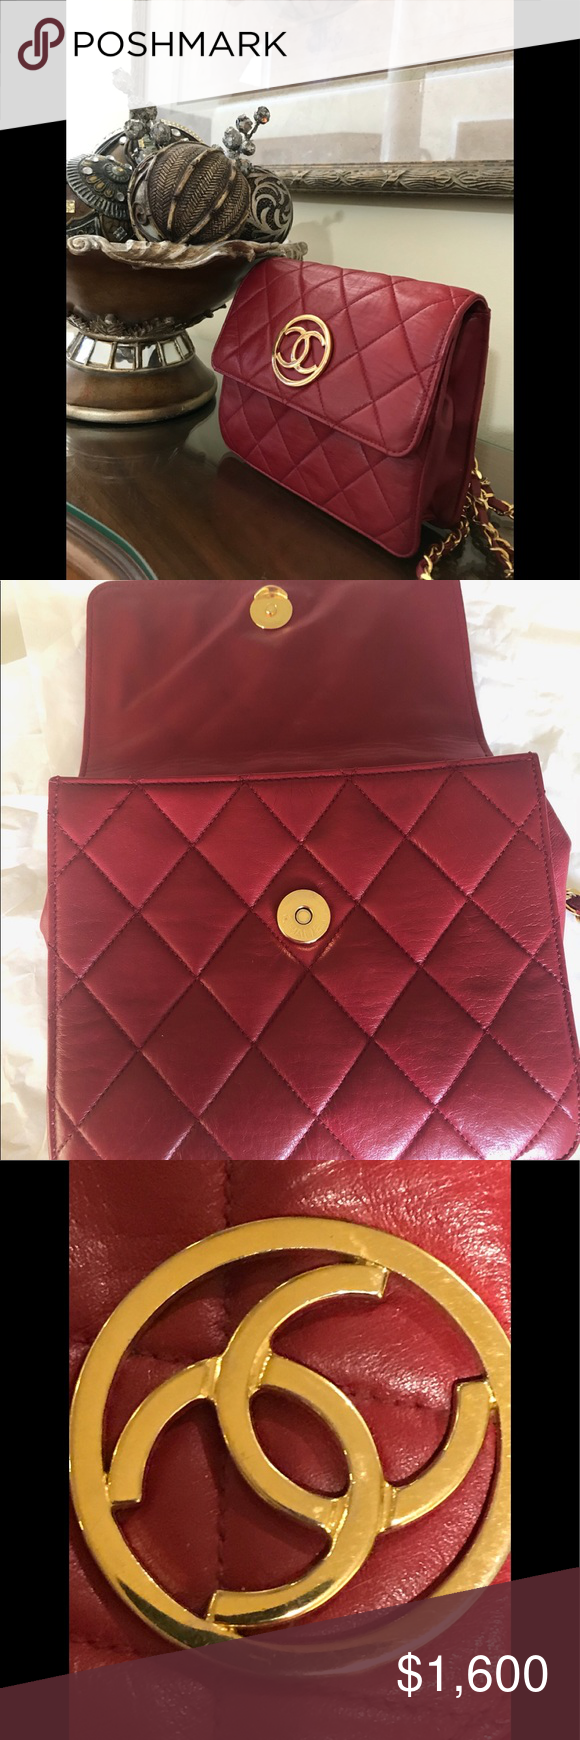 CHANEL Vintage Lambskin EXTRA PICS This preloved bag was